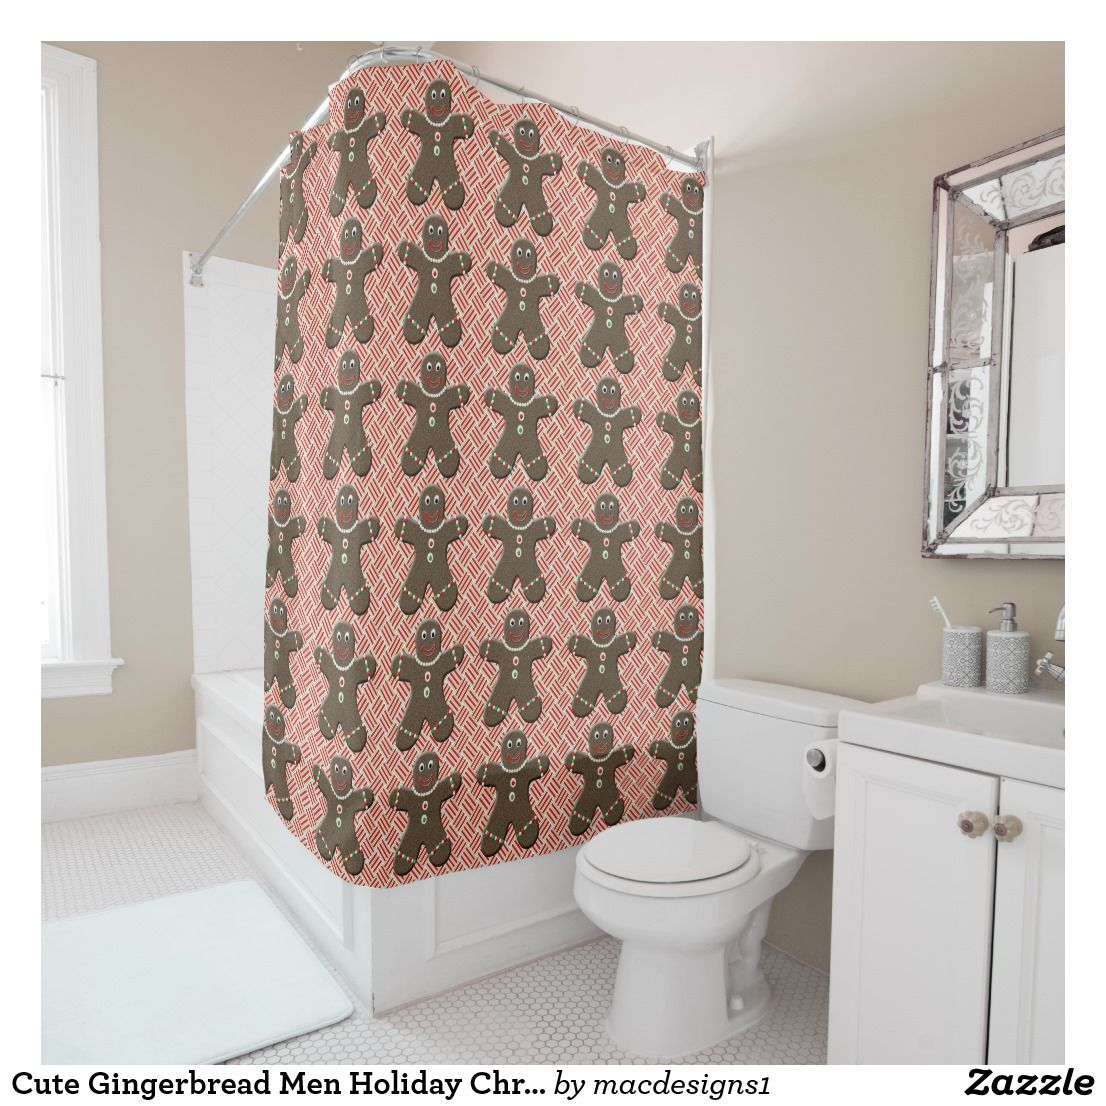 Cute Gingerbread Men Holiday Christmas Shower Curtain